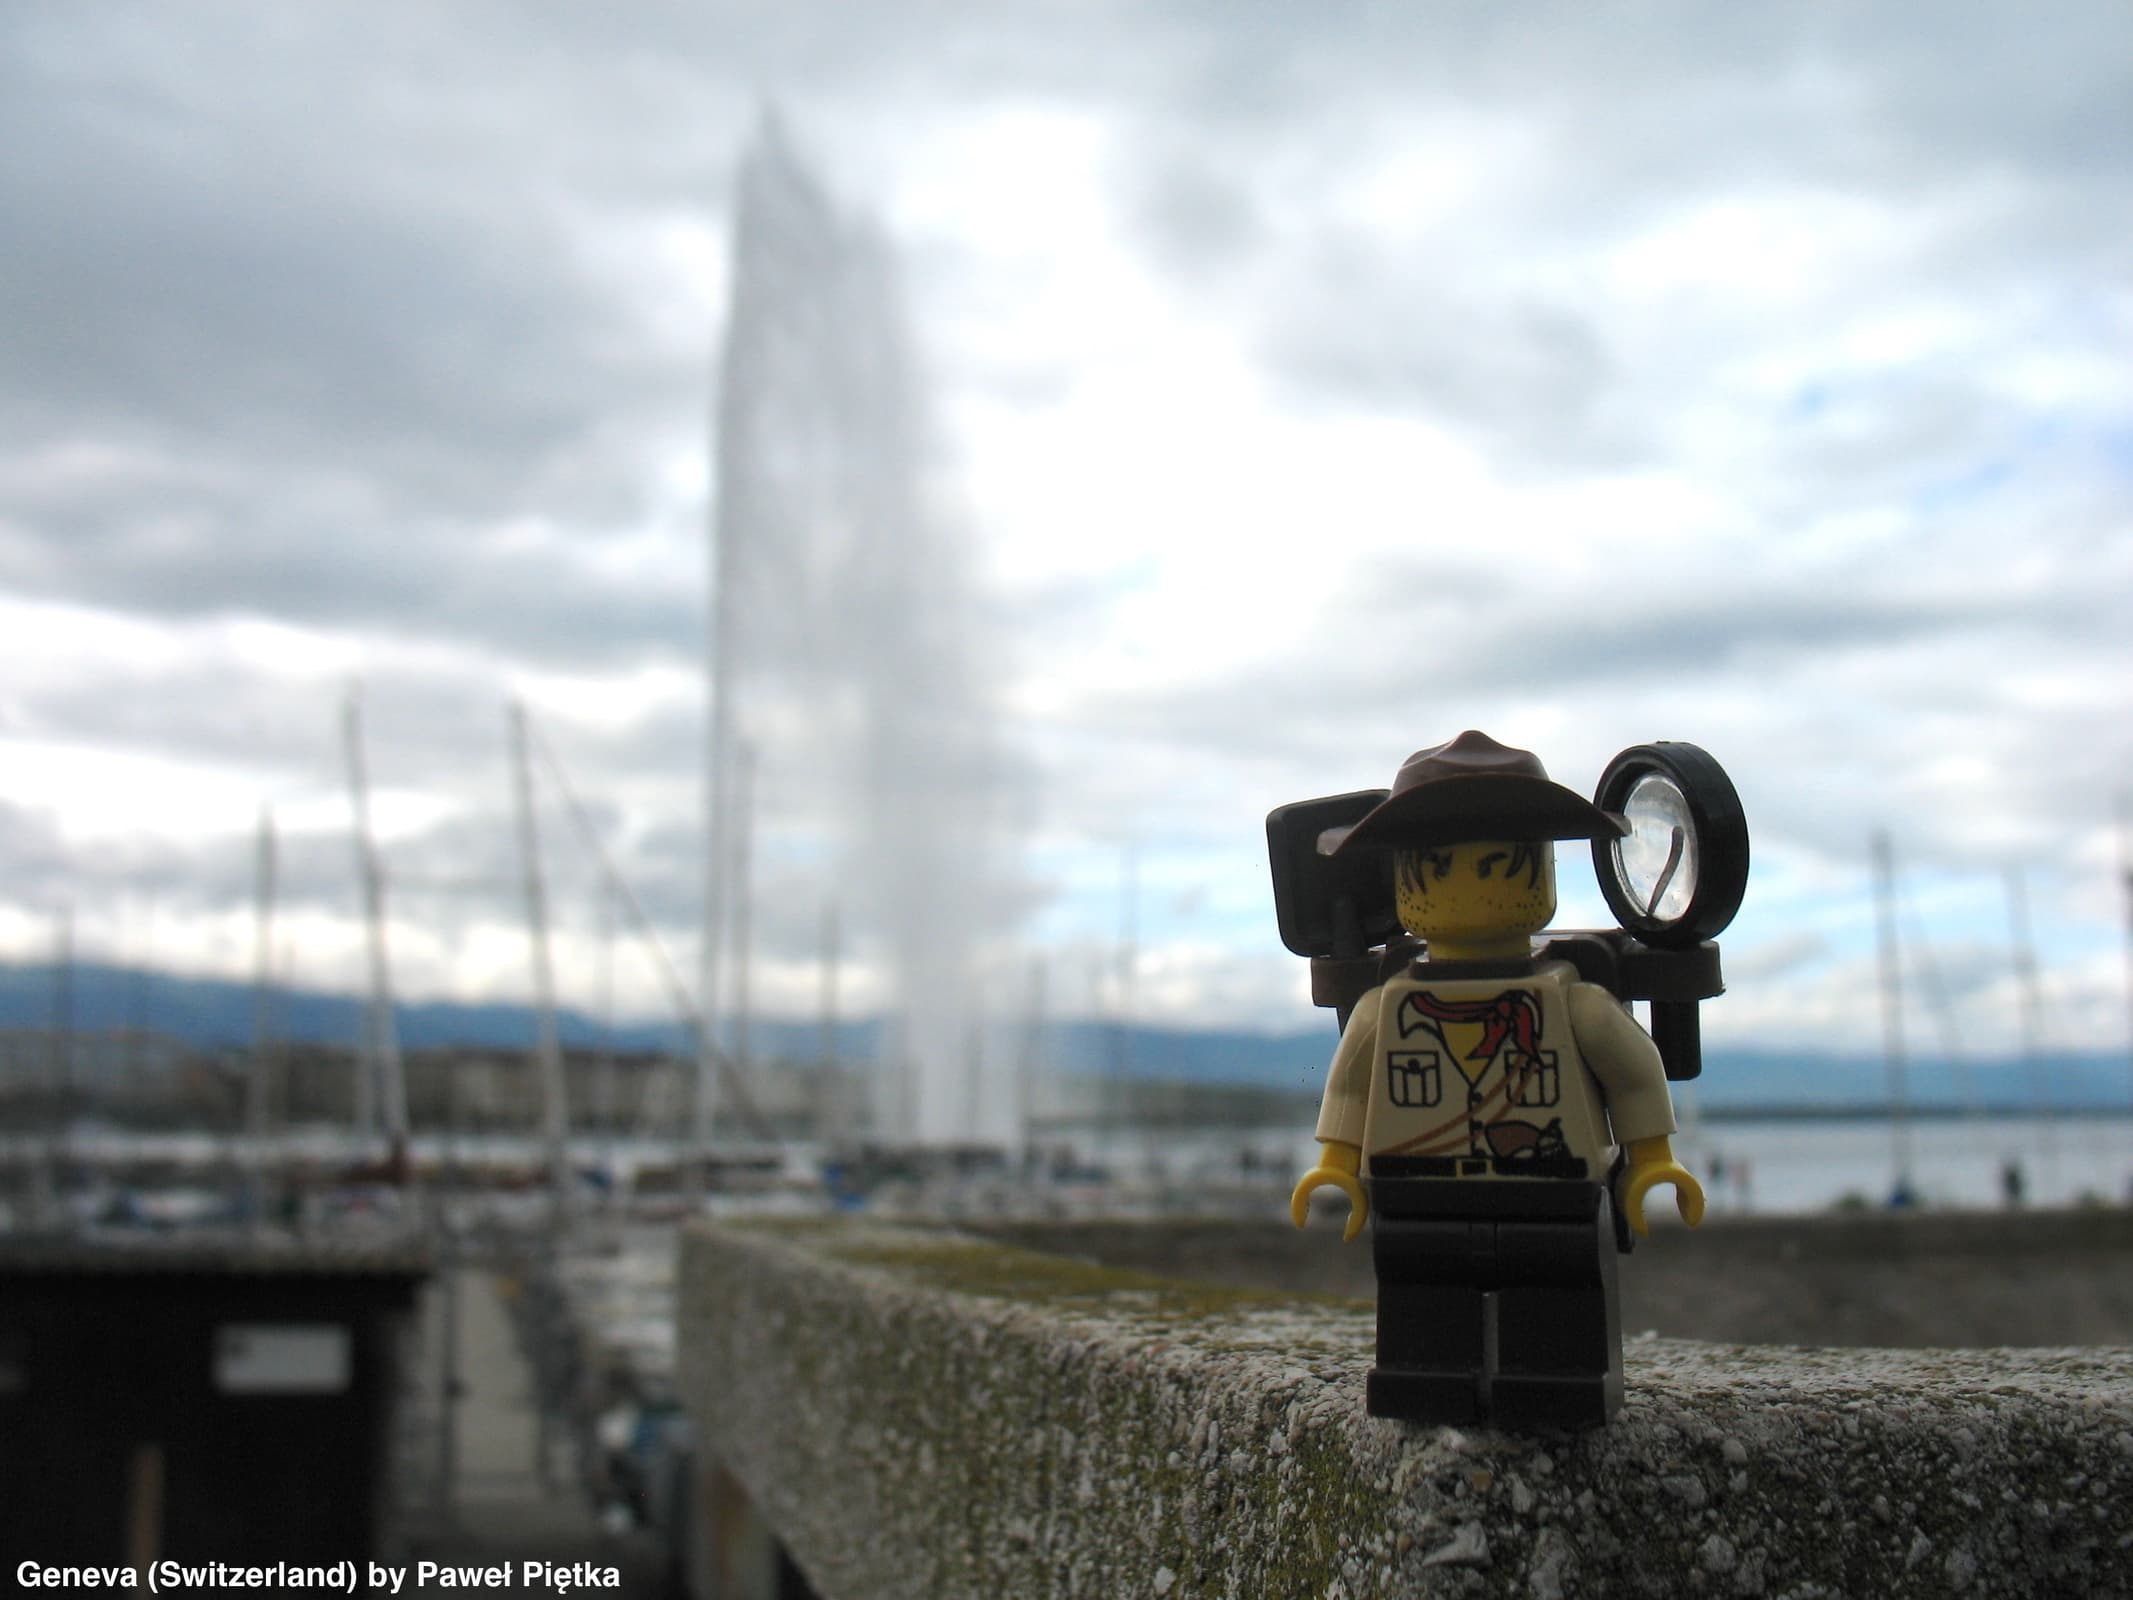 Geneva (Switzerland) - Jet d'Eau fountain